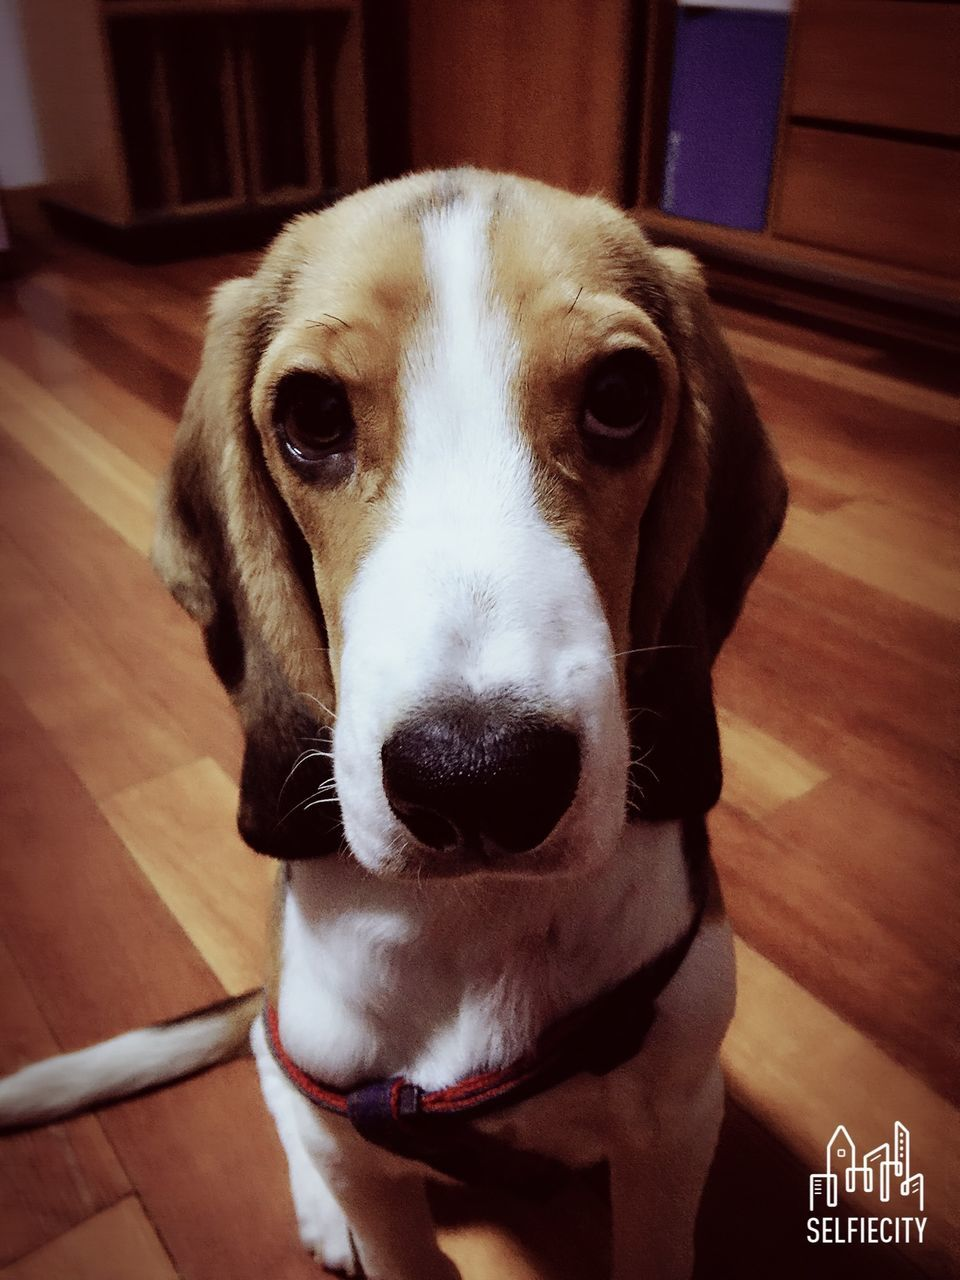 dog, pets, domestic animals, one animal, mammal, indoors, animal themes, looking at camera, portrait, close-up, home interior, no people, day, beagle